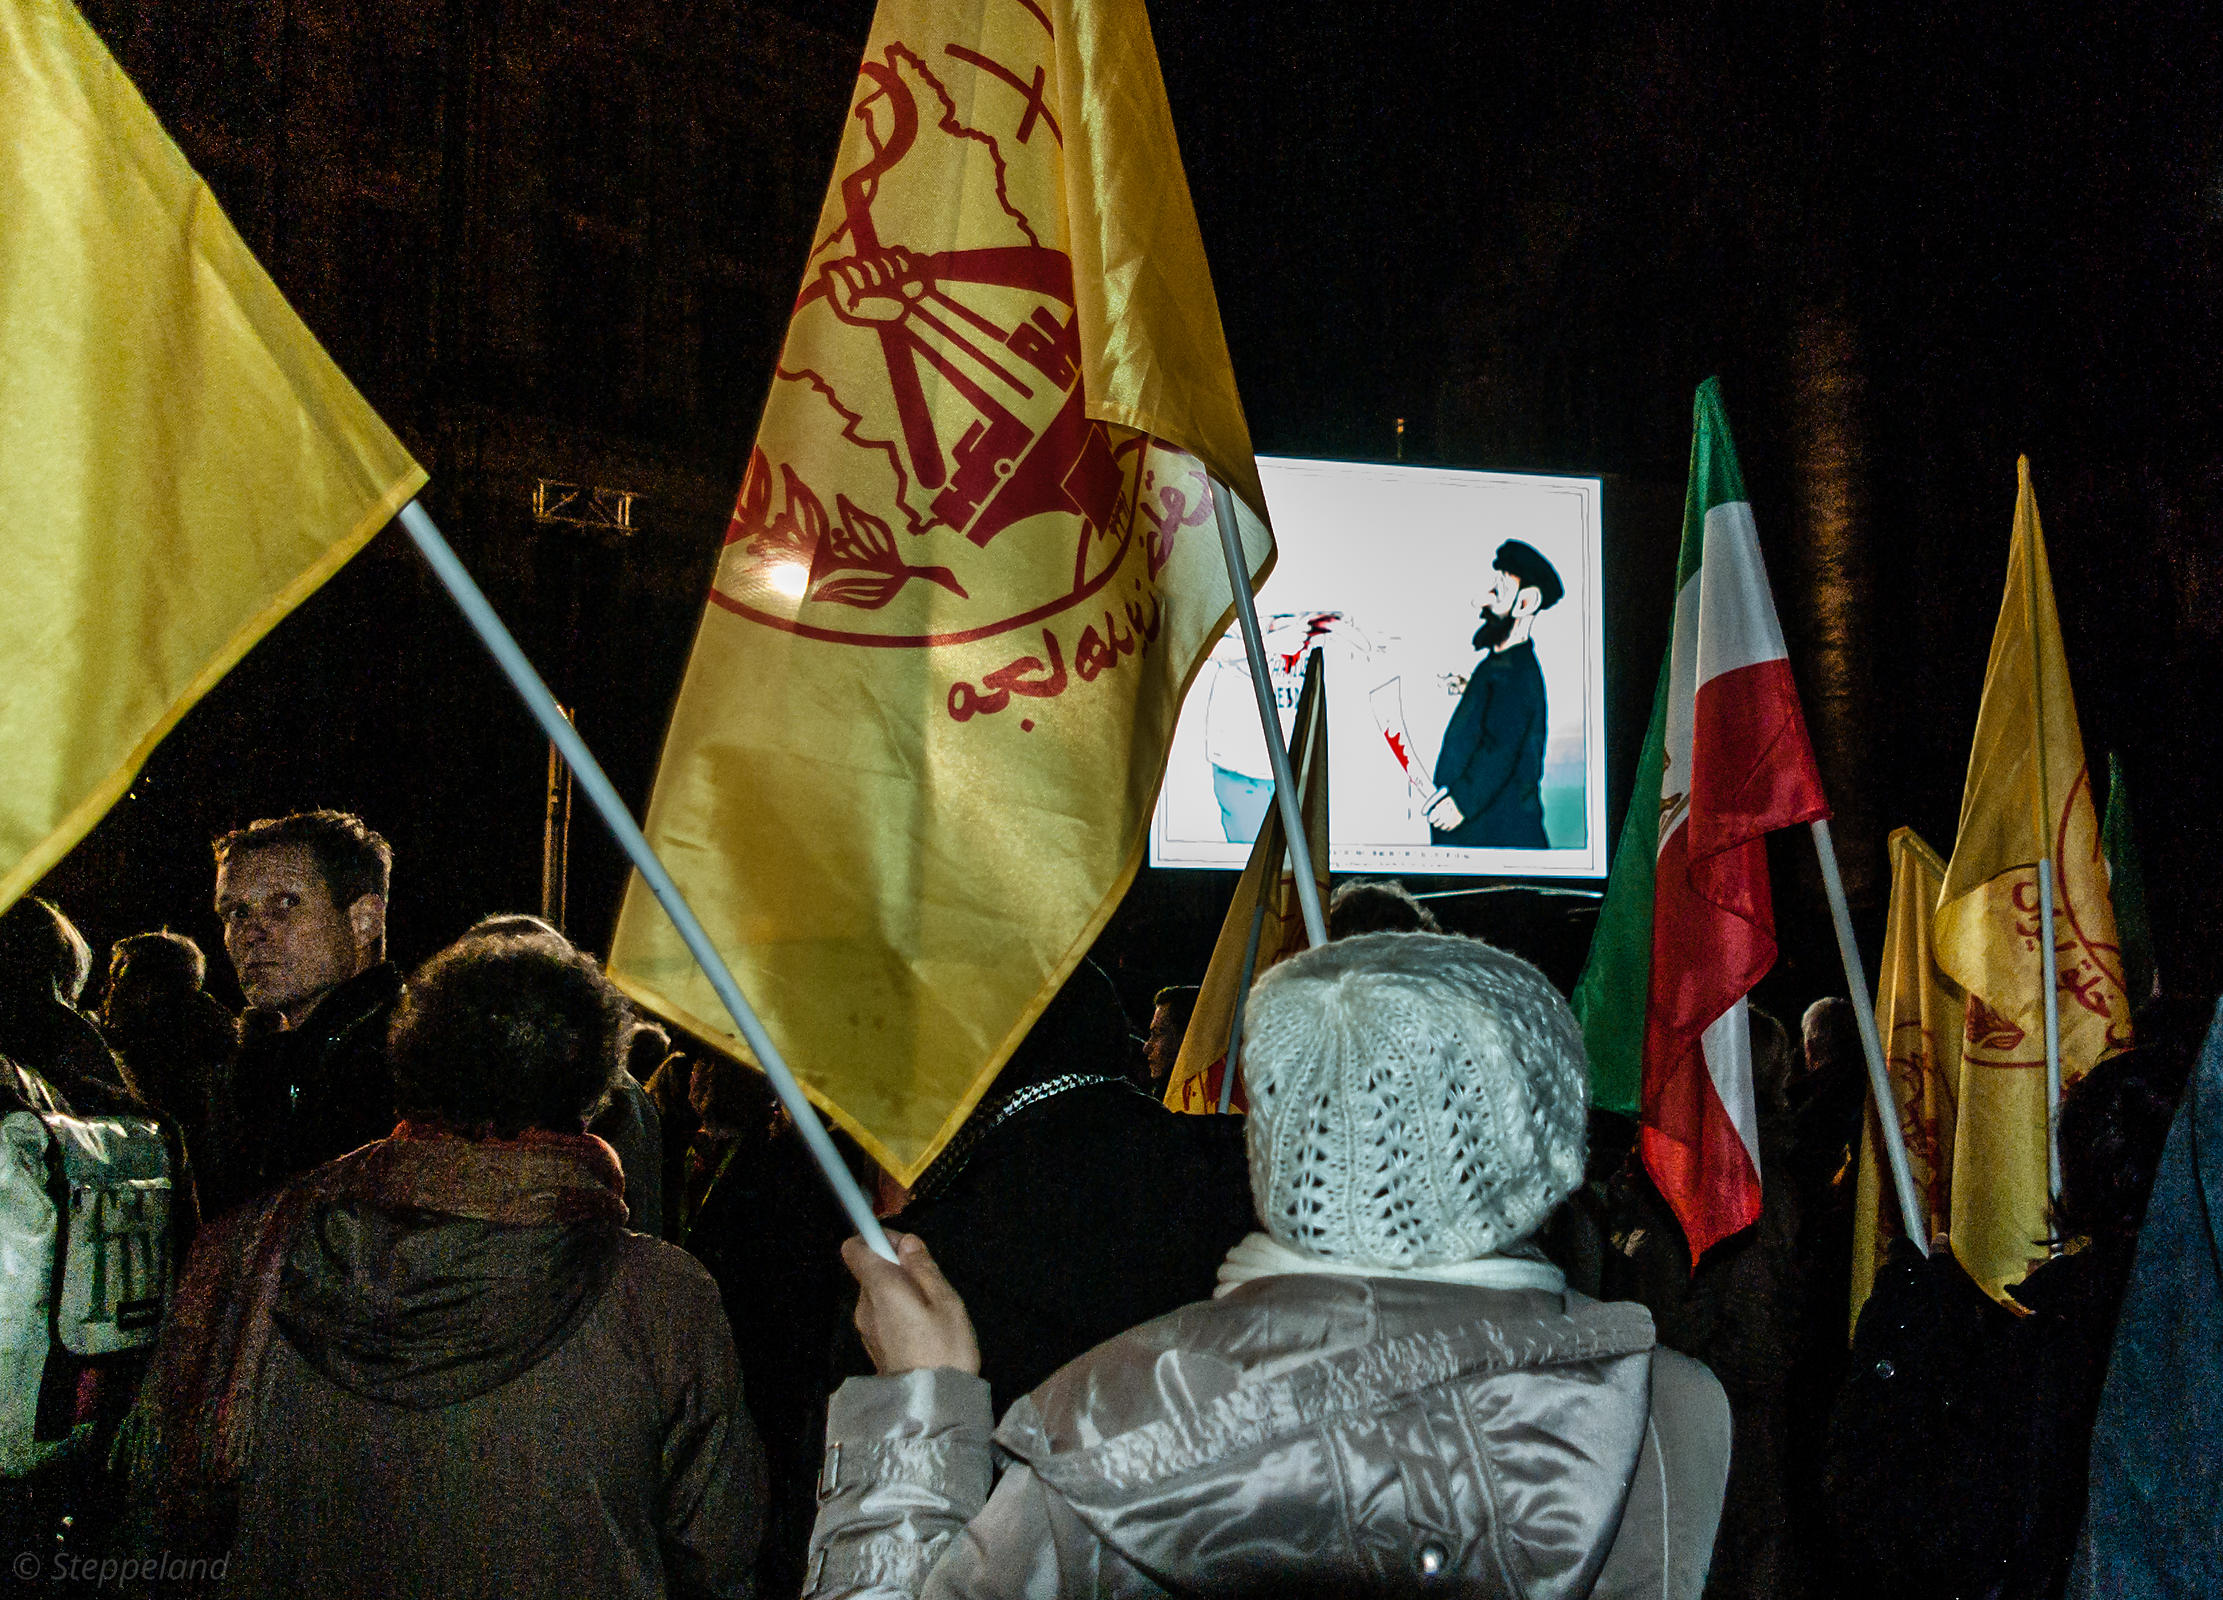 Amsterdam, Netherlands 2015-01-08: Flags and cartoons were carried during the demonstration : 'Je suis Charlie'.